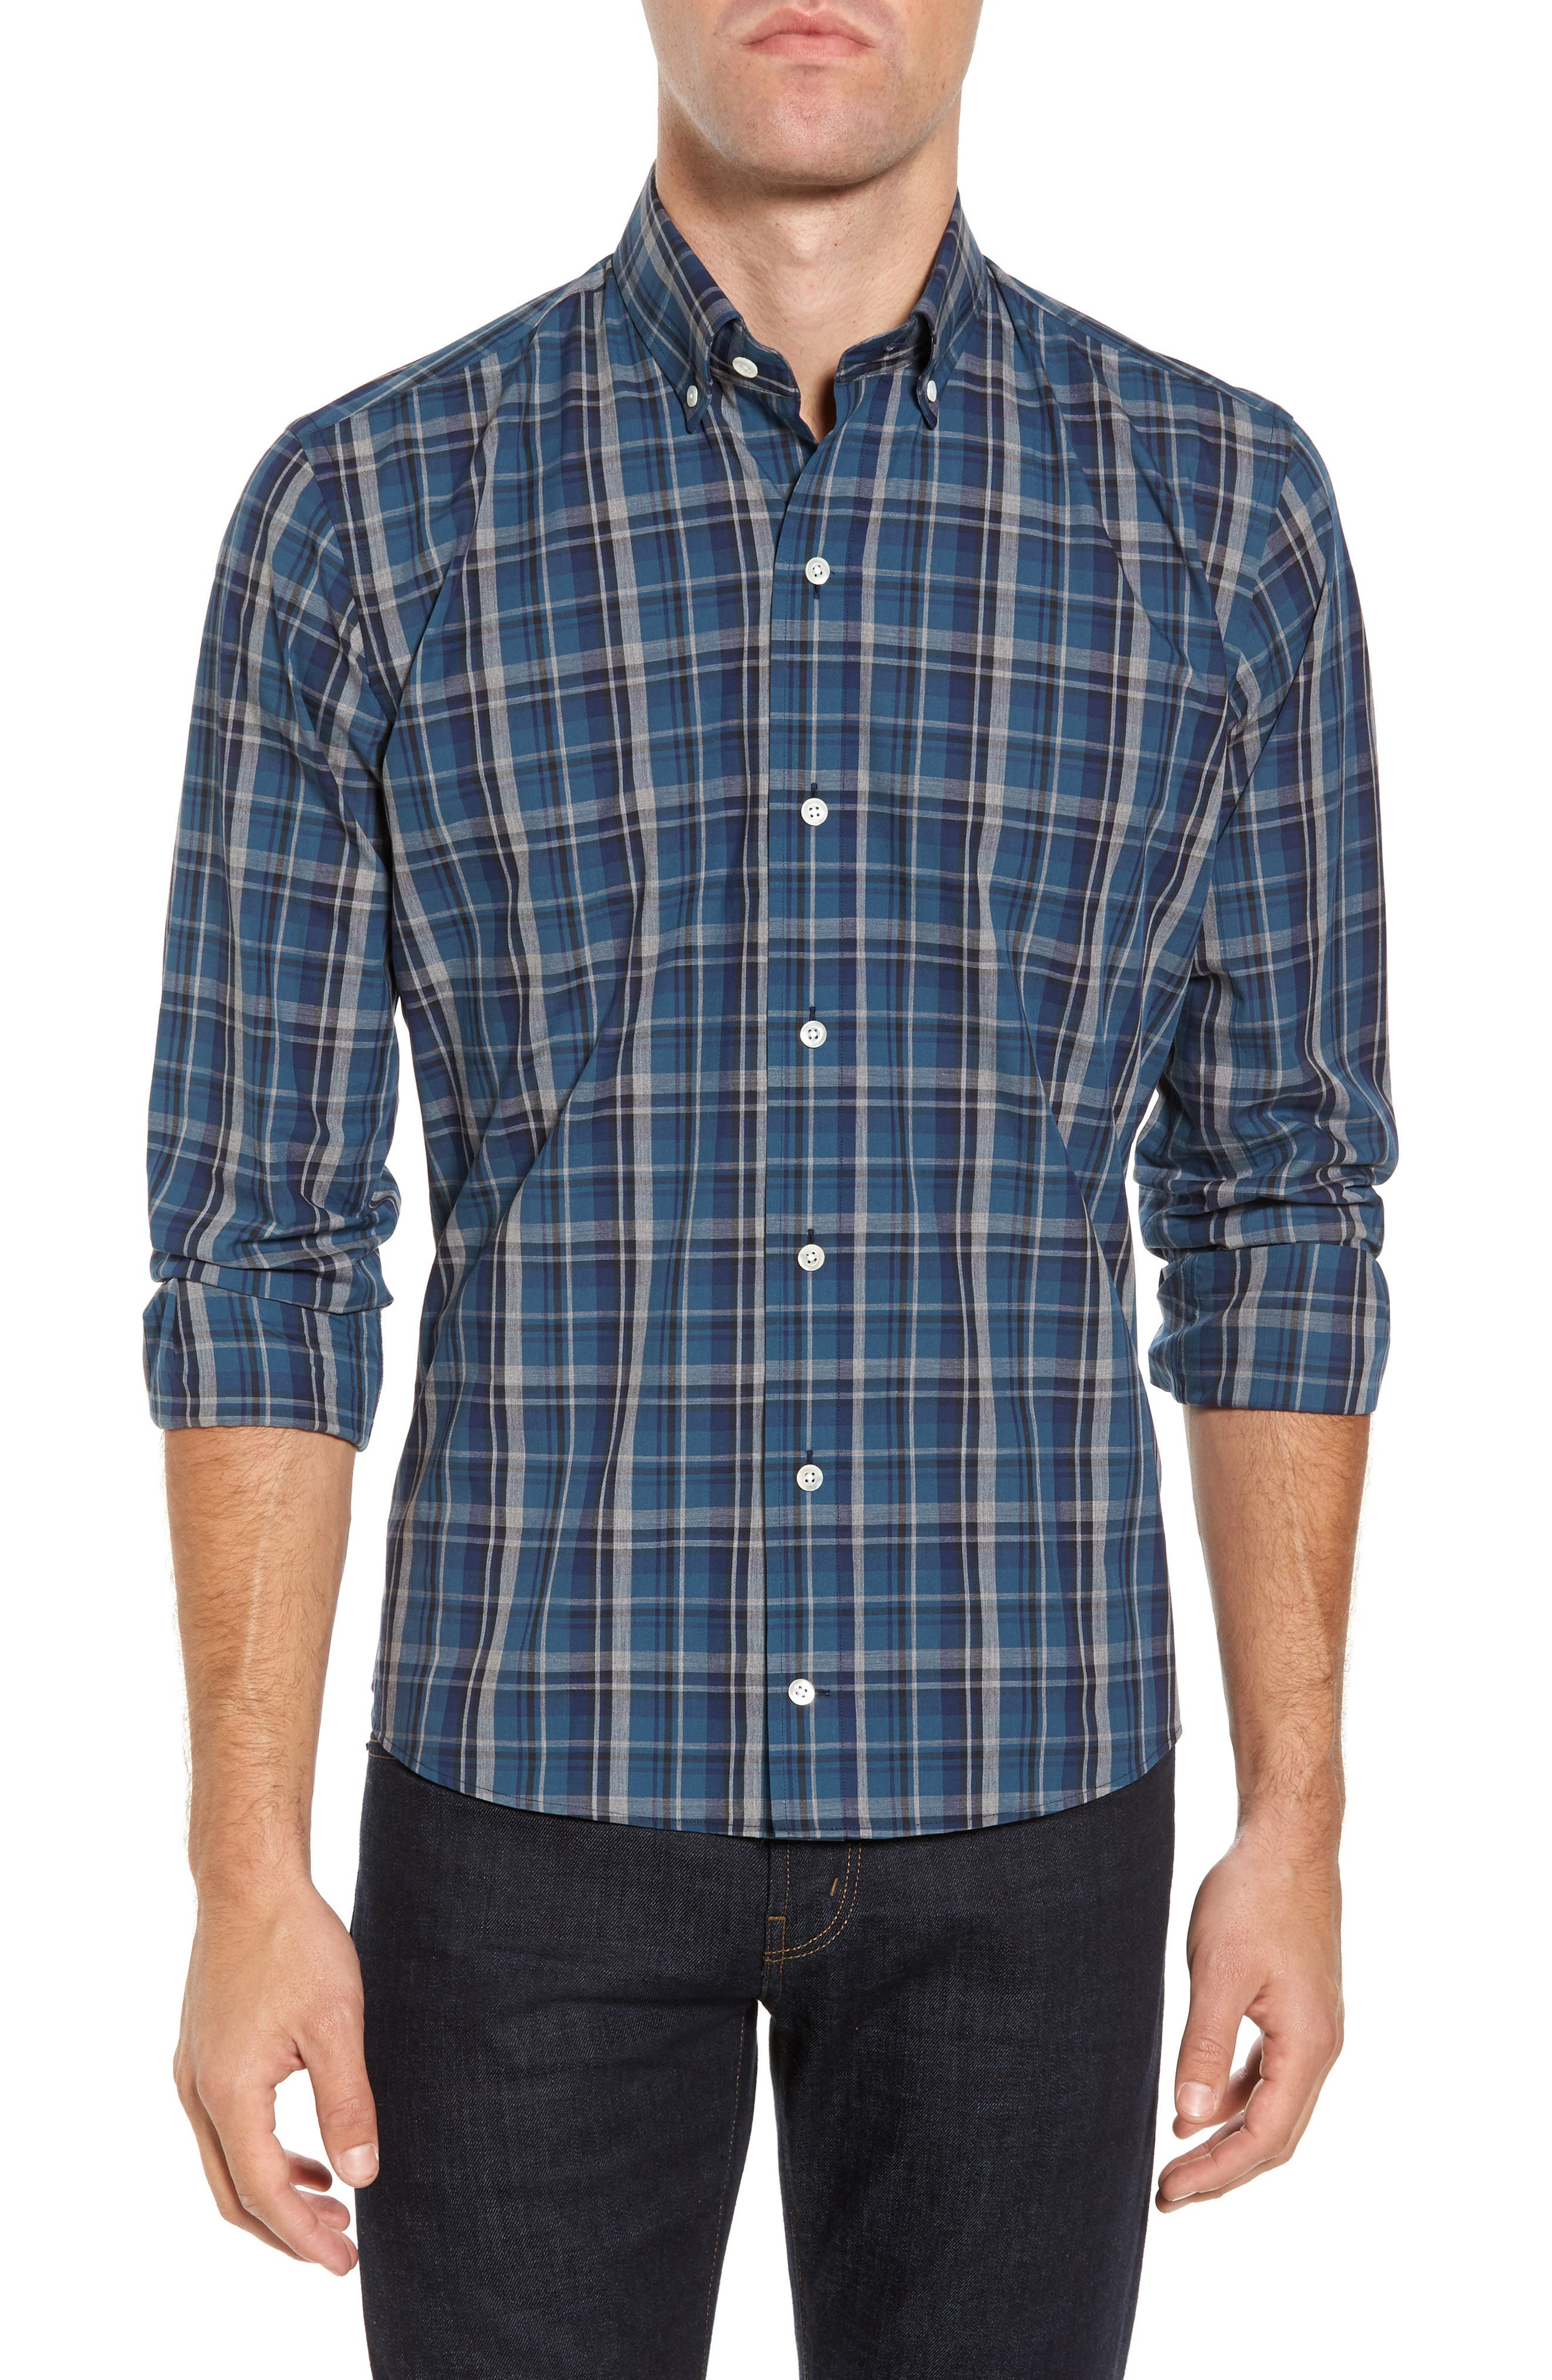 Alternate Image 1 Selected - Ledbury Slim Fit Plaid Sport Shirt